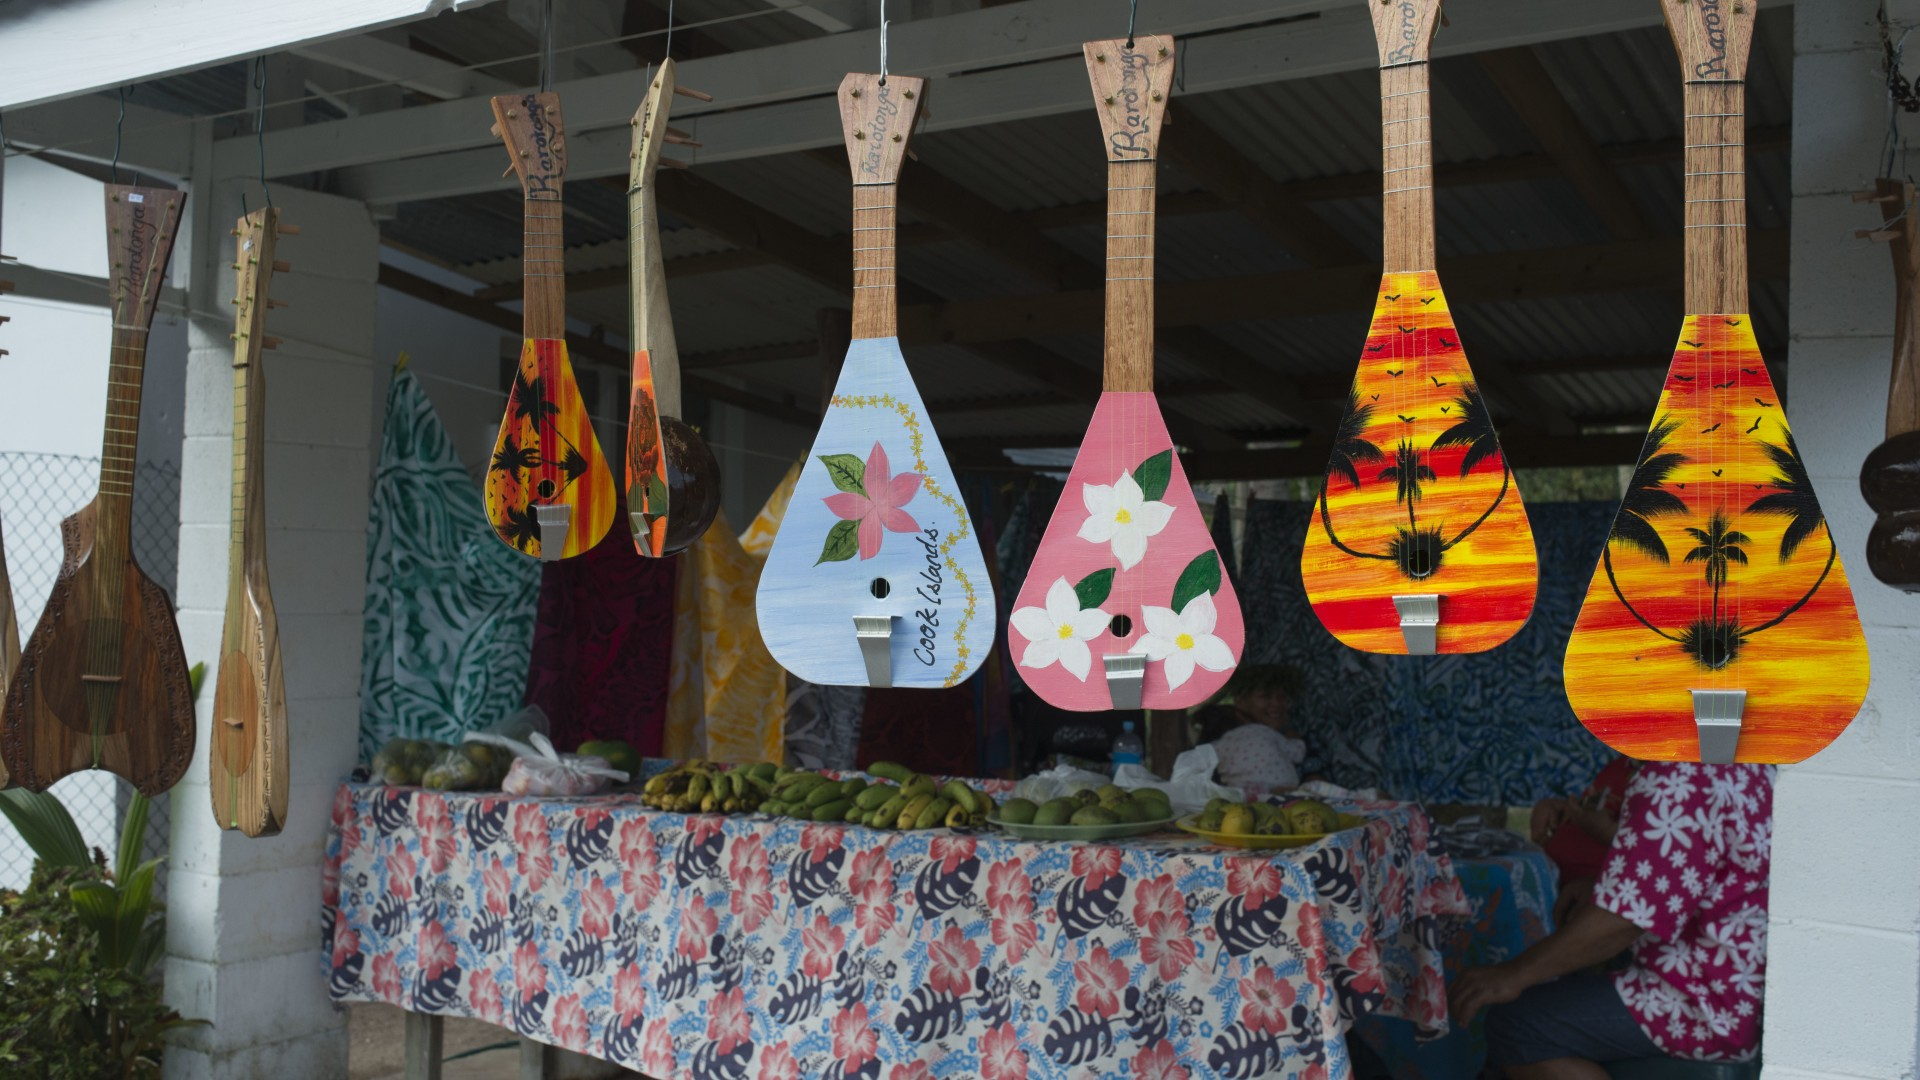 Rarotonga Island. Cook Island. Polynesia. South Pacific Ocean. Typical Ukulele Tahitian Polynesian guitar shop. The Ukulele (meaning 'jumping flea' in Hawai'ian) is believed to have travelled from Hawaii via Tahiti in the late 1800's. The preferred ukulele in the Cook Islands today are banjo-shaped or oblong, which came into vogue in the Cook Islands about 1995, after Te Ava Piti, a popular Tahitian band, aired them in a music video. Ukuleles are always used in tandem with guitars during performances. Traditional dance is the most prominent art form of the Cook Islands. Each island has its own unique dances that are taught to all children. Christian music is extremely popular in the Cook Islands. There is much variation of Christian music across the region, and each island has its own traditional songs. Tahitian ukes are a pretty rare instrument so its hard to find places(outside the pacific) where you can buy or listen to them. Below are a few websites where you can purchase ukes and uke music online. You can pick up strings at your local fishing shop. Anything from 10kg-30kg guage line will do the damage, depending on what kind of uke, sound and playing you're into. The best place to see live ukes in action are at traditional arts and culture festivals (see links). Local street markets around the pacific are also good places to find ukes for sale along with plenty of cheap local food, clothes, arts and crafts and free entertainment. Heres just a few - Cook Islands: Punanga Nui markets in Avarua(Rarotonga). Aotearoa(NZ): Avondale, Otara, Mangere and Porirua markets. Tahiti: Papeete market.   Verwendung weltweit